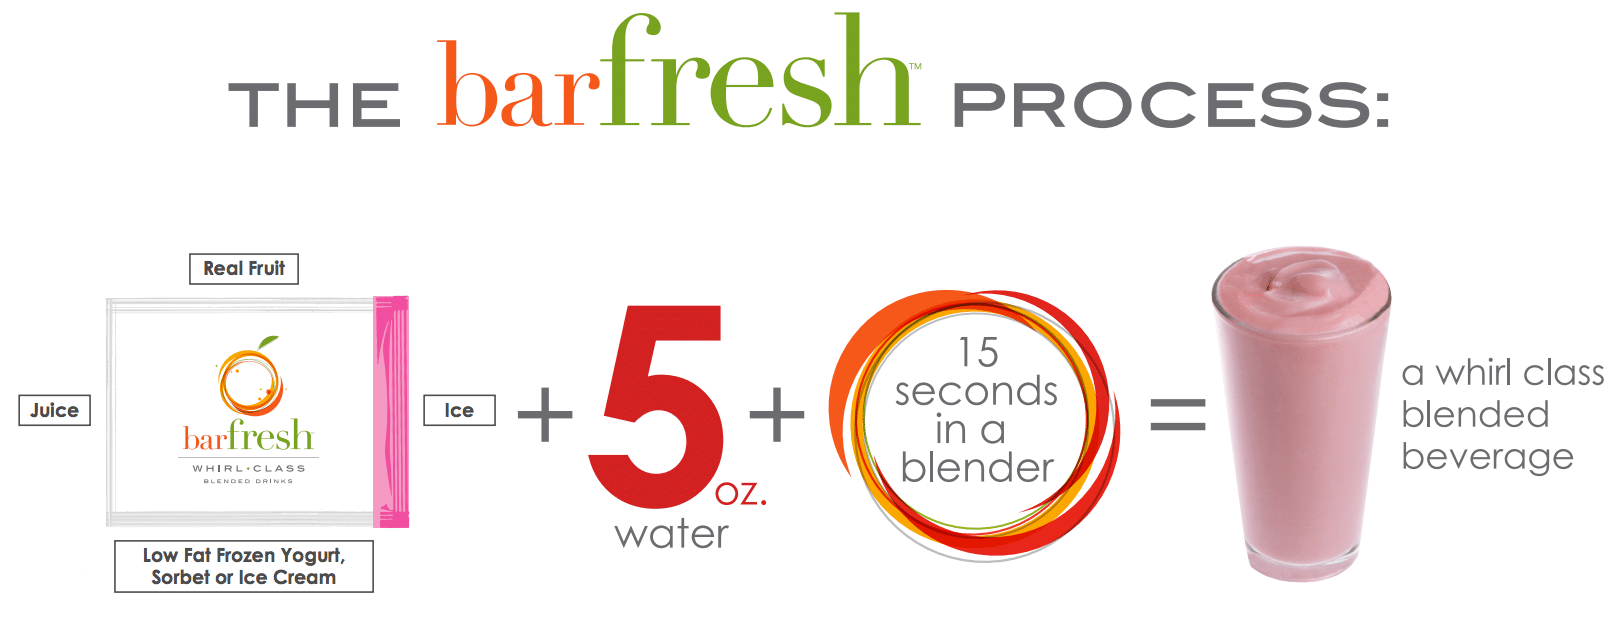 The BarFresh Process